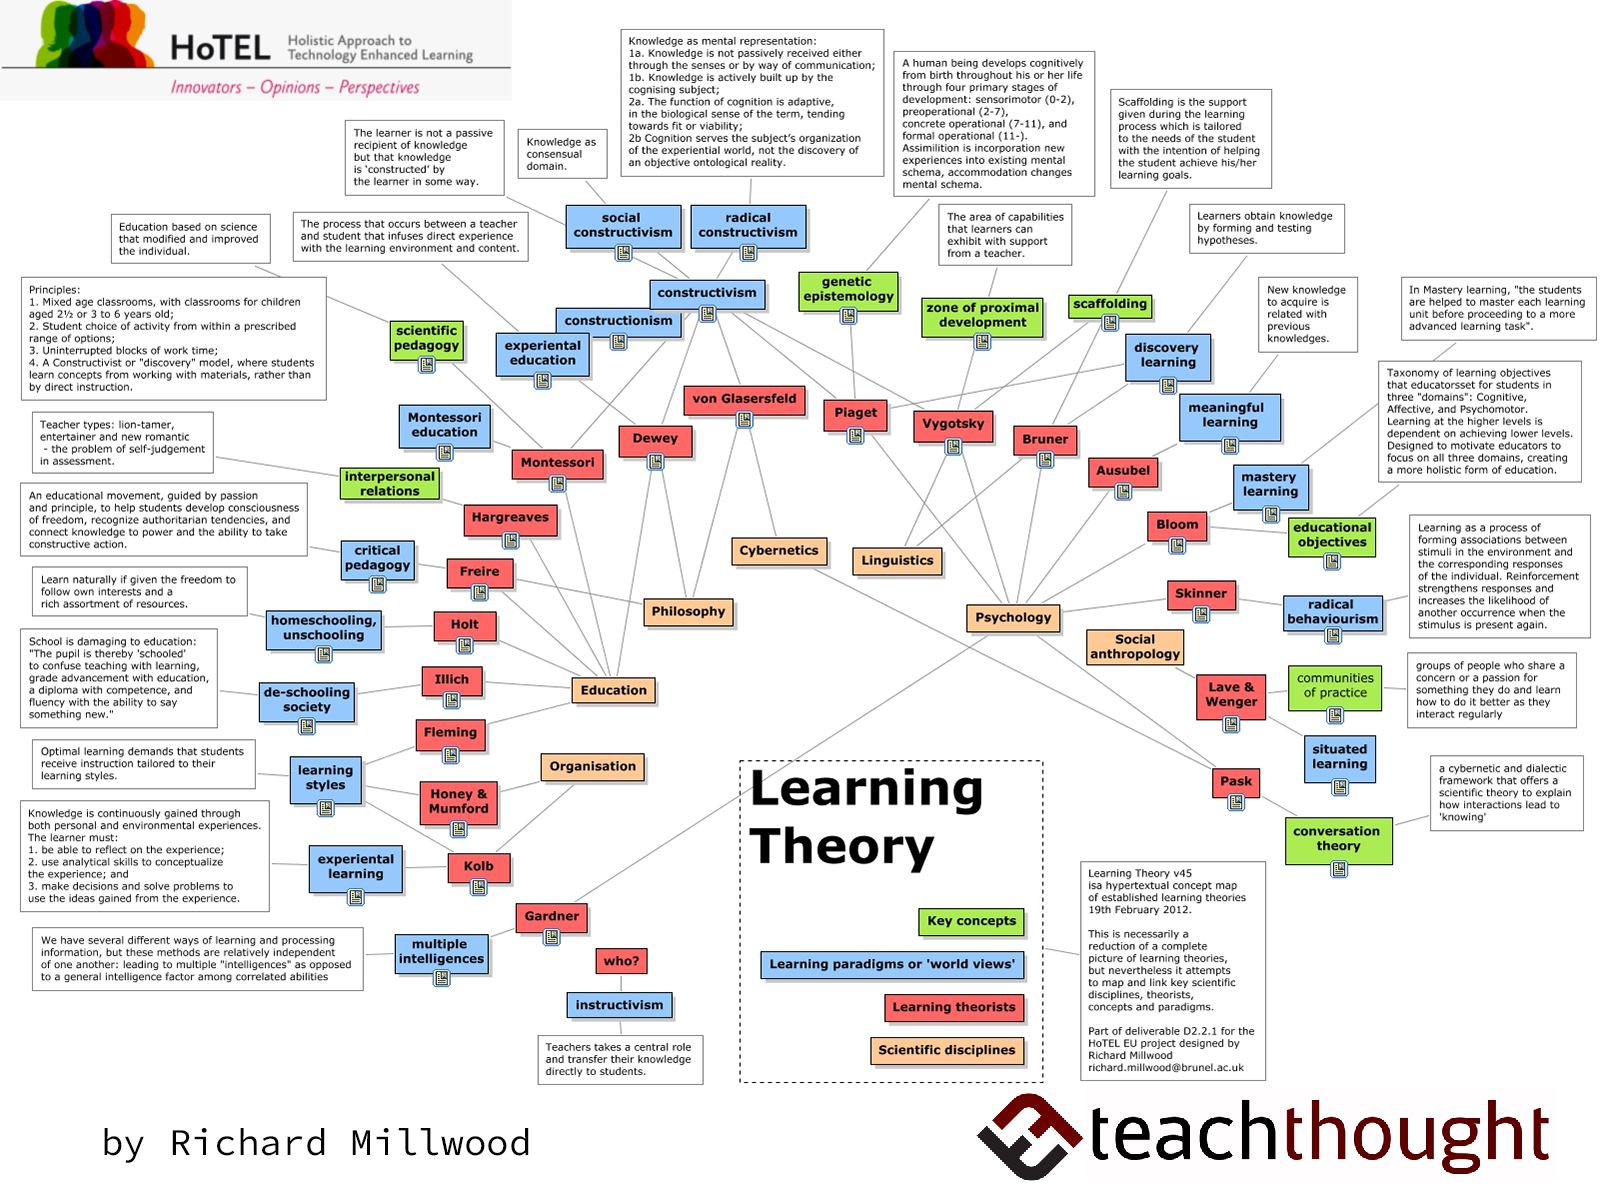 A Visual Summary 32 Learning Theories Every Teacher Should Know